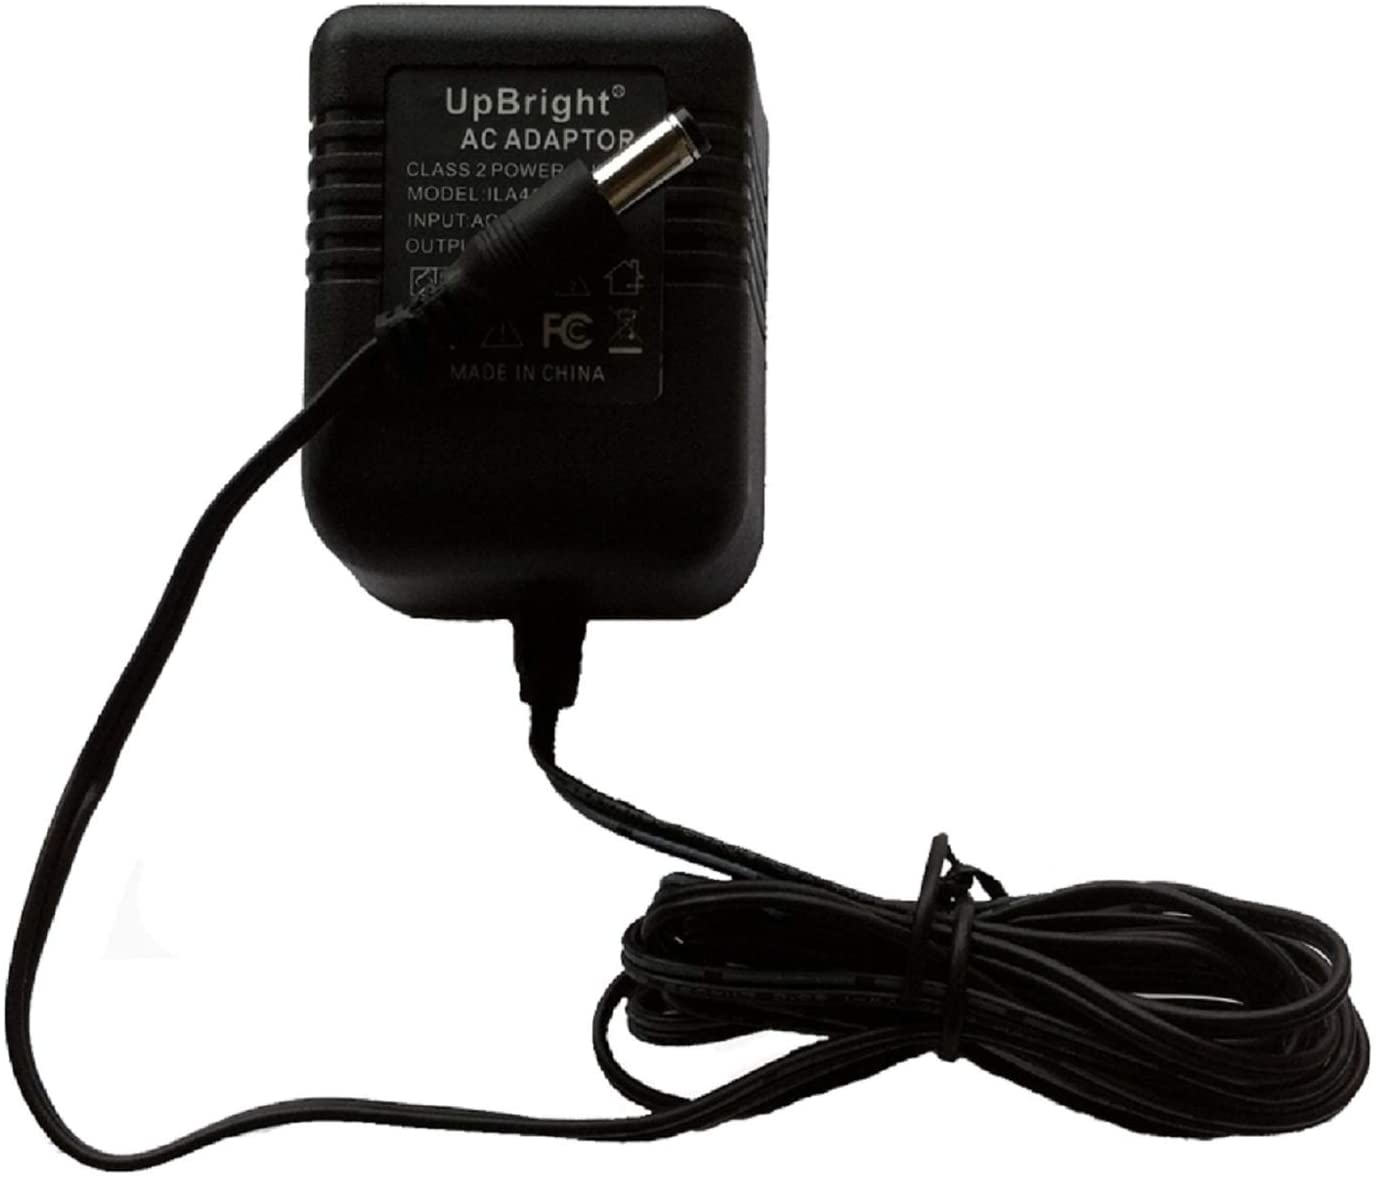 UpBright 5V AC Adapter Compatible with Black & Decker PD360 PD400LG CSD300T CSD300TP 3.6V DC Pivot Driver Drill UA-0402 5102970-19 90500898 90500896 UA050020 5102400-03 90530404 UA042010E B&D Charger